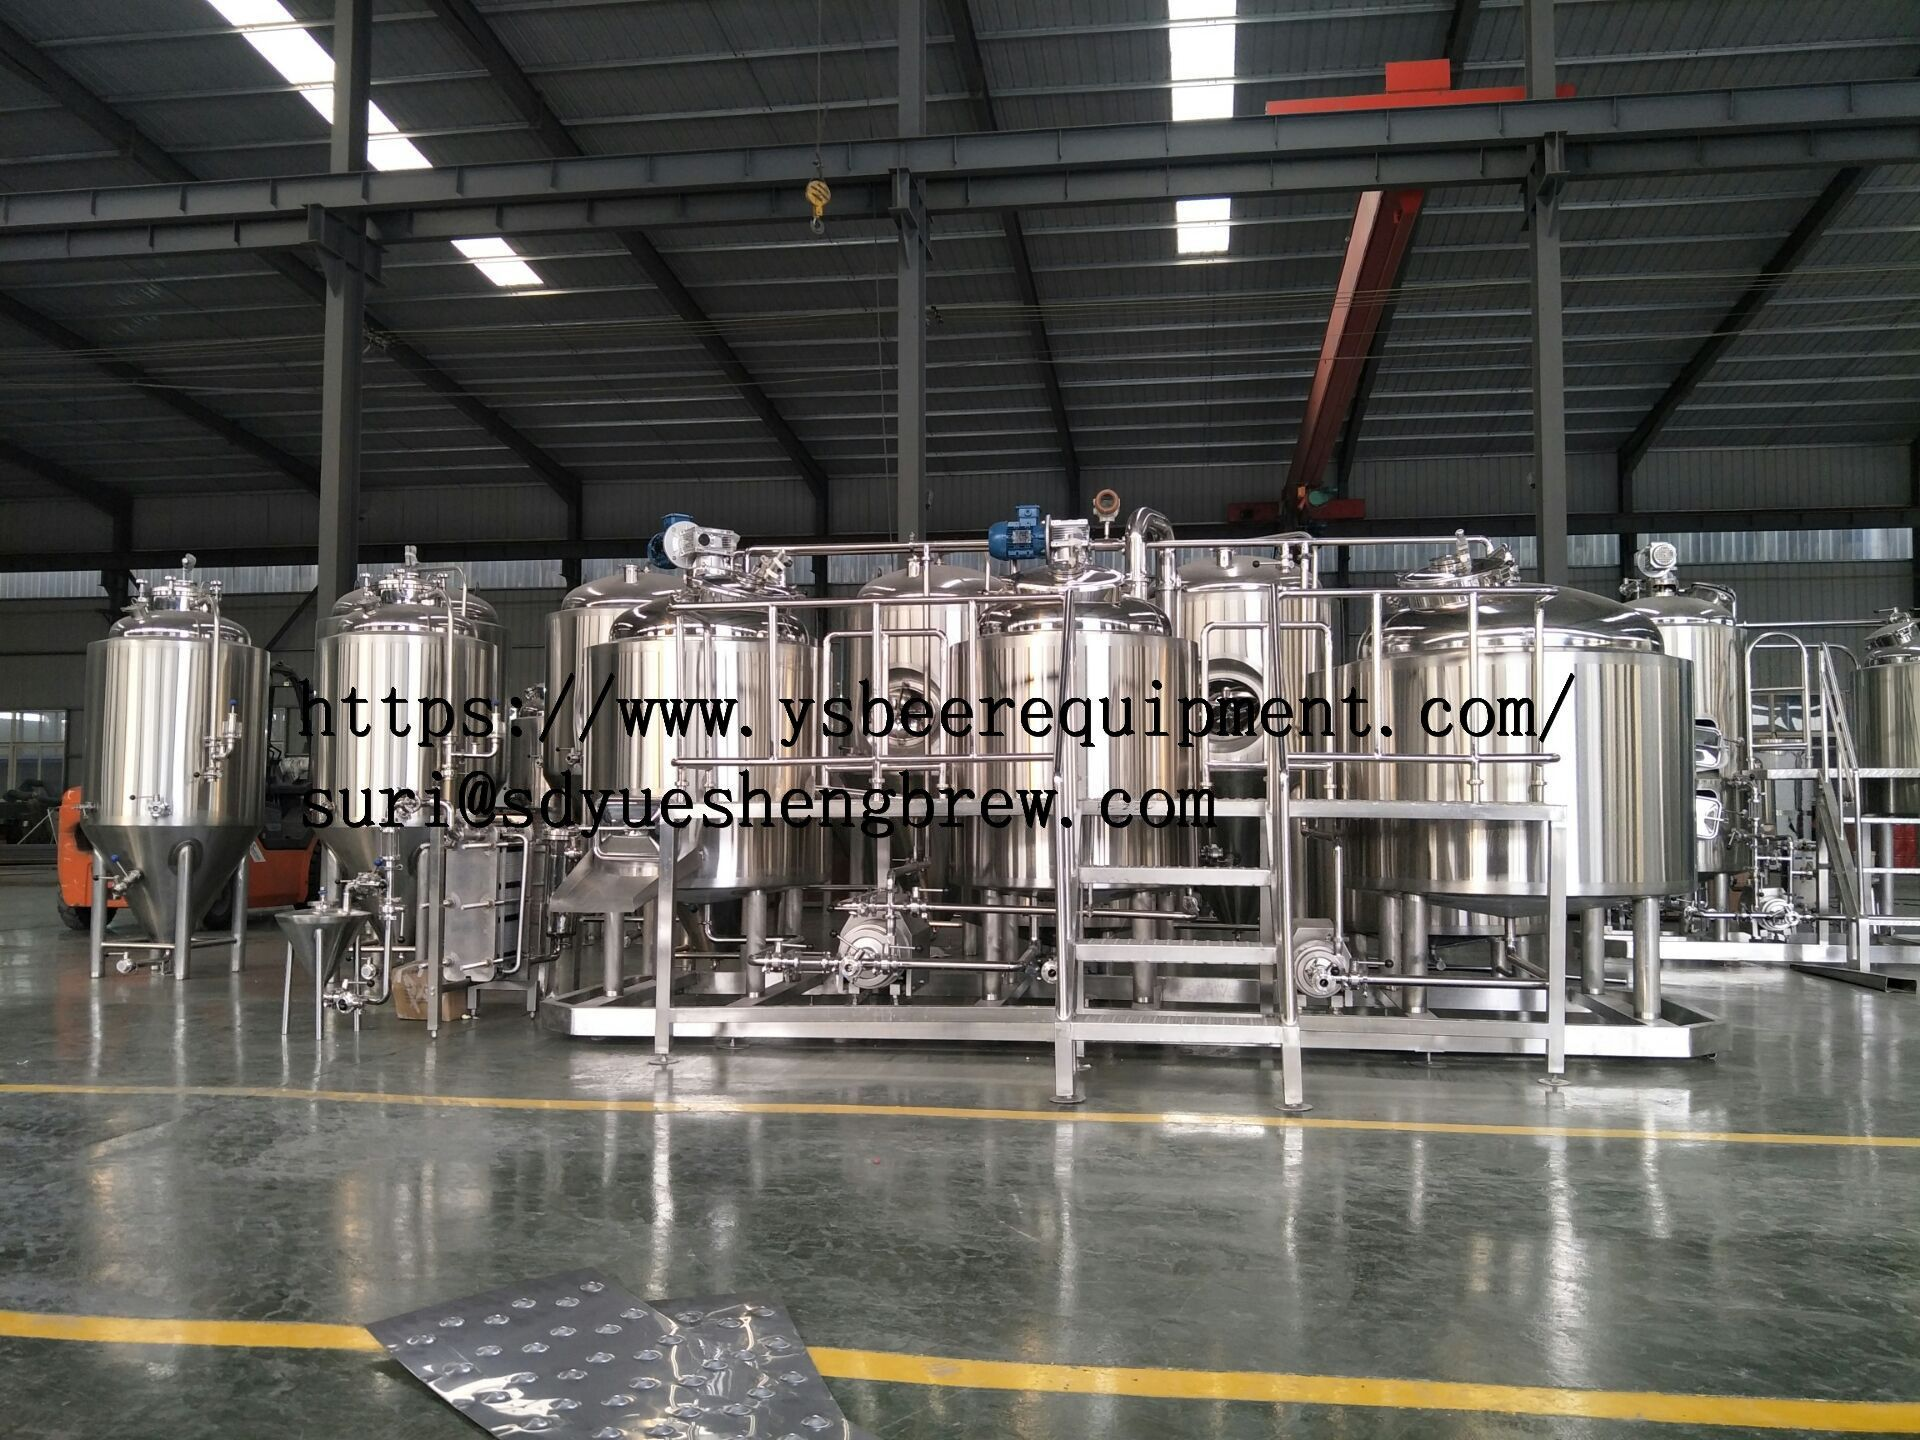 Brightbeertankbritetank Conditioningtank 1bbl100bbl Sanitary Stainless Steel 304 Effective Capacity 10bbl Beer Tanks Nano Brewery Brewery Equipment